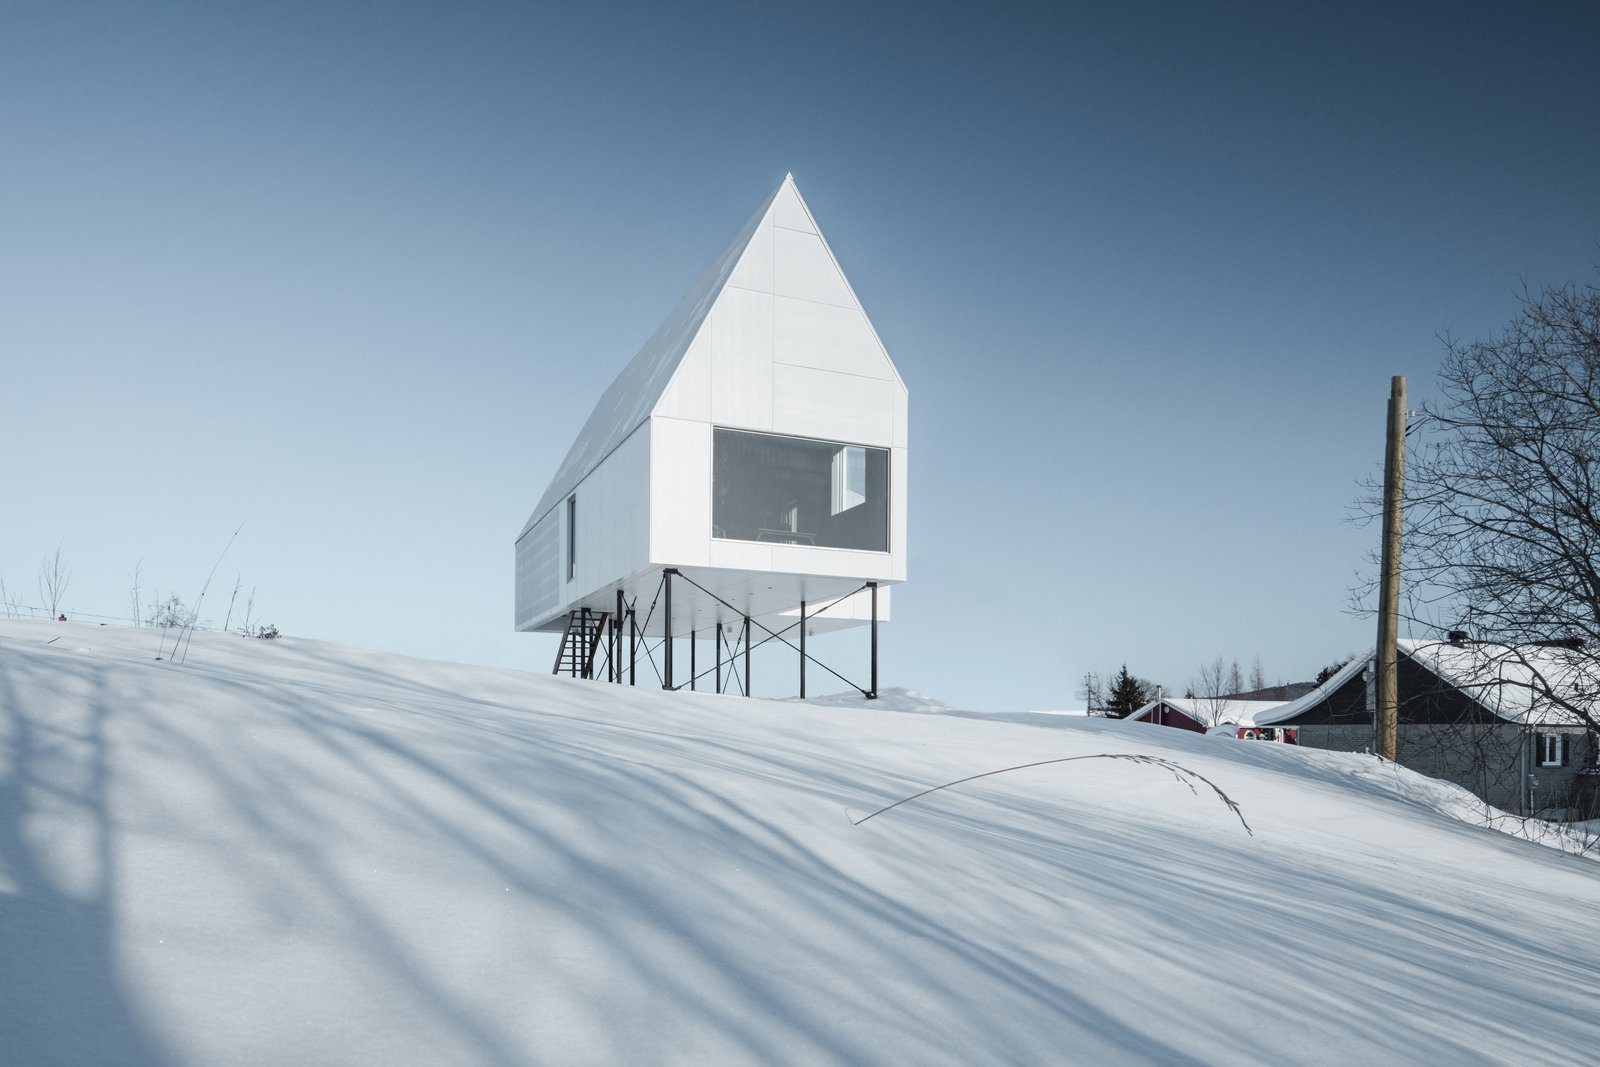 Exterior, Cabin Building Type, Metal Roof Material, Gable RoofLine, Concrete Siding Material, and Tiny Home Building Type White concrete panel cladding and corrugated steel roof panels give this cabin a crisp, geometric form that almost melts into the landscape on bleary, snowy days.